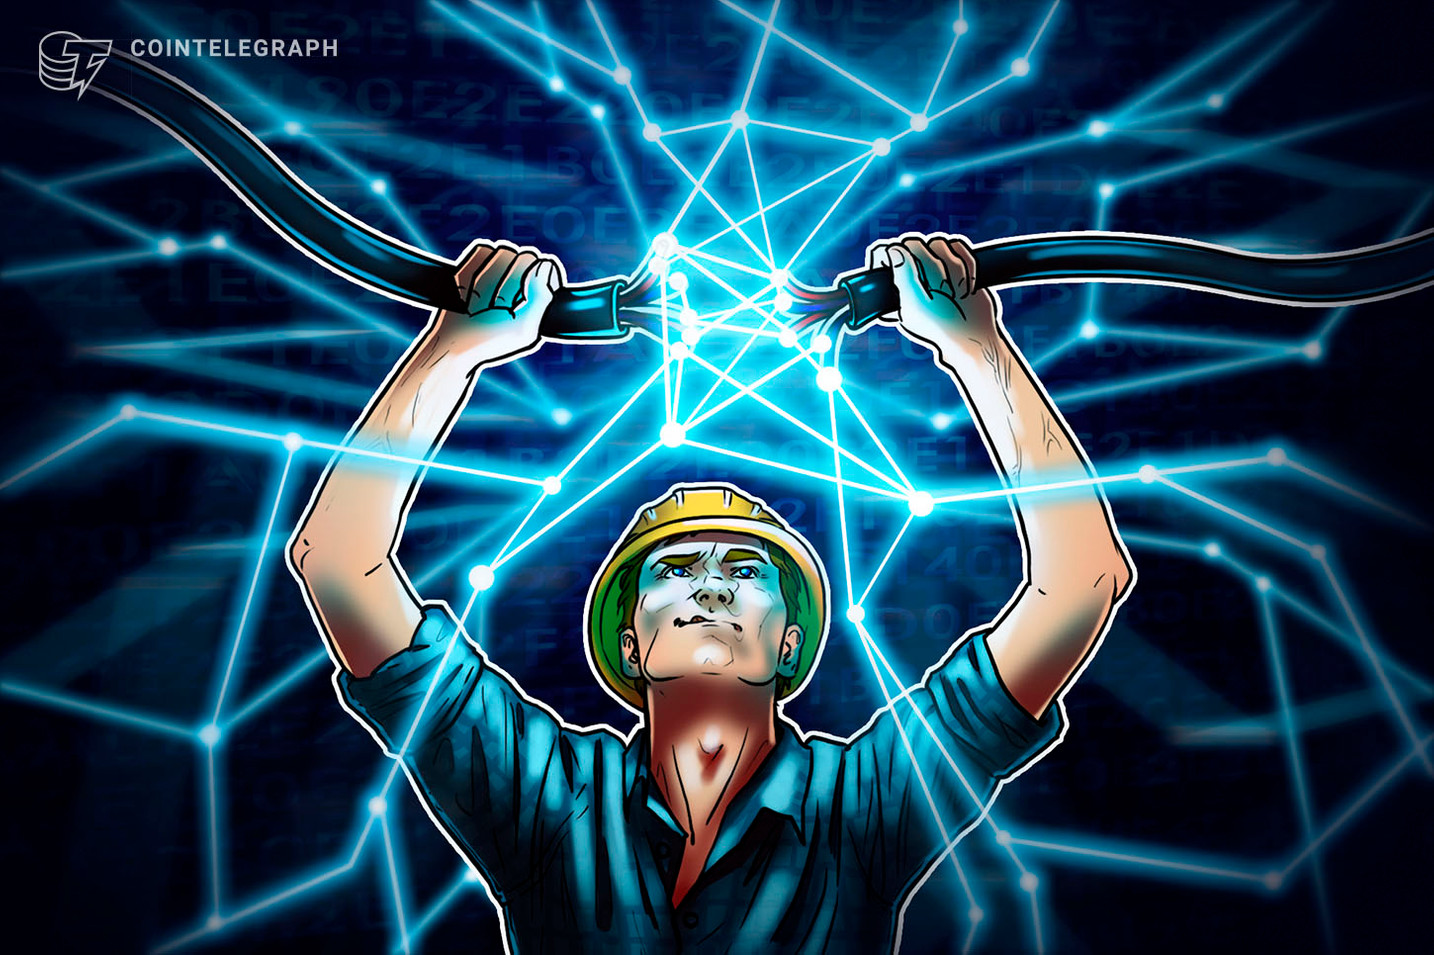 Abkhazia government blames illegal crypto mining for energy crisis